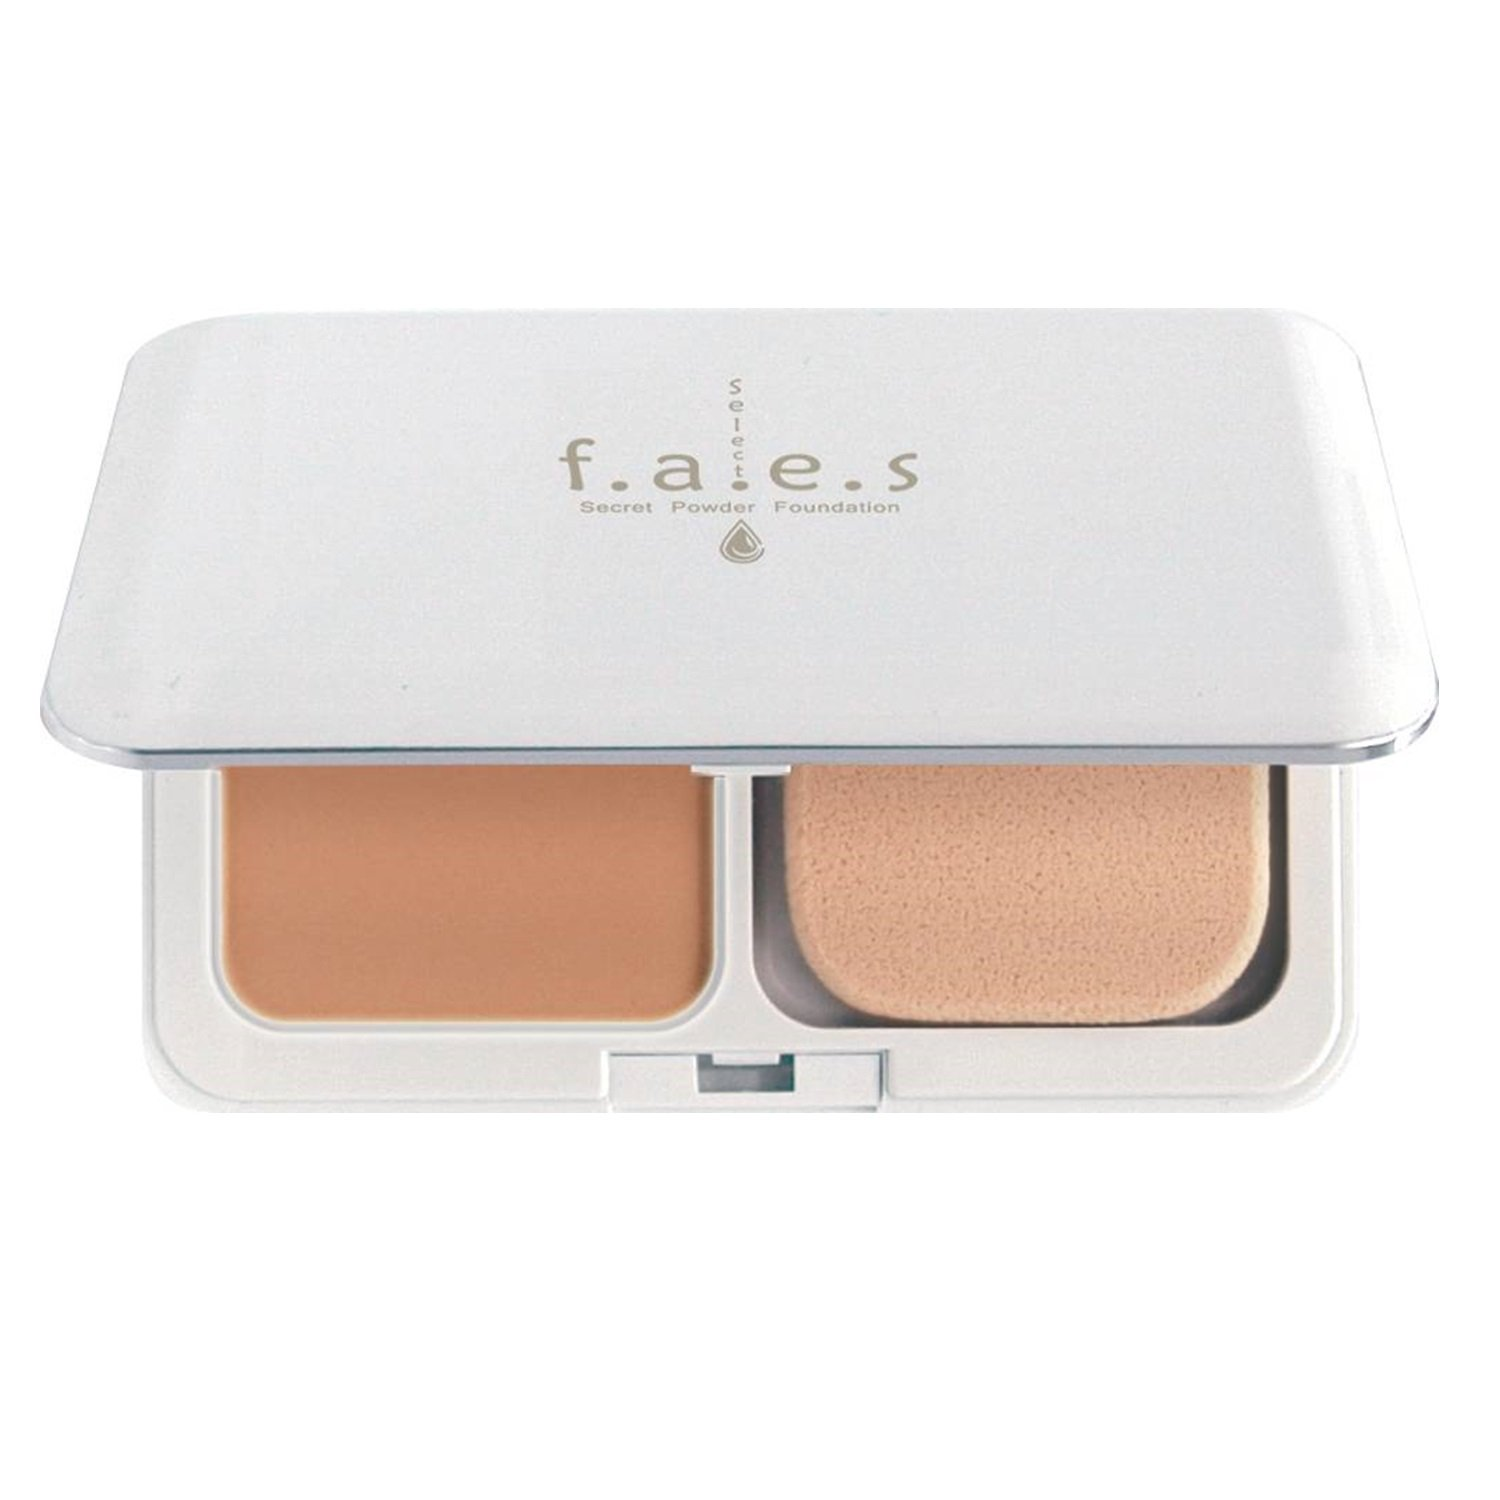 Dr.Select Doctor Select f.a.e.s Powder Foundation Color Vanilla Japan